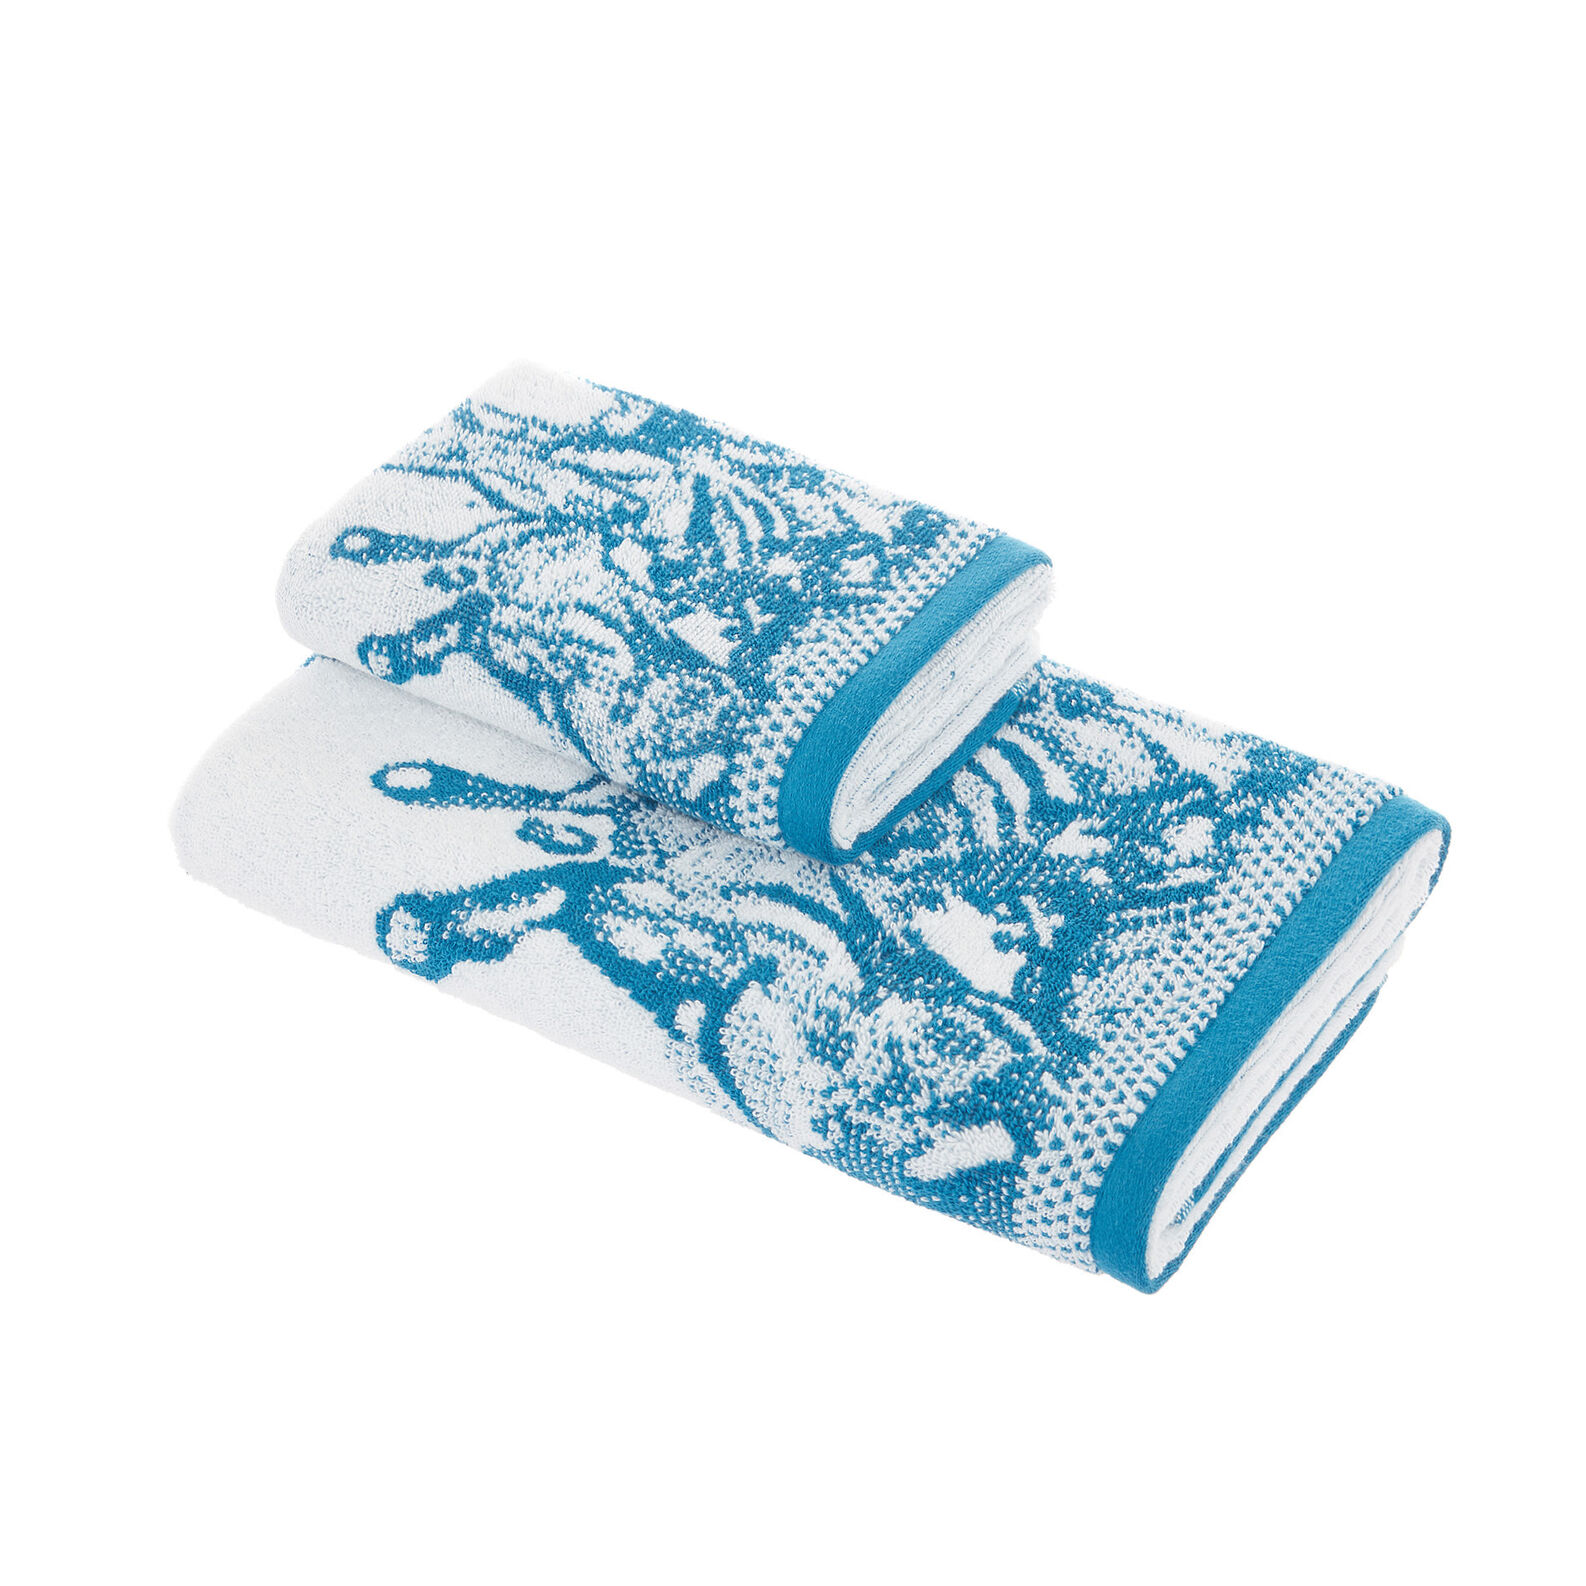 Cotton terry towel with droplet design